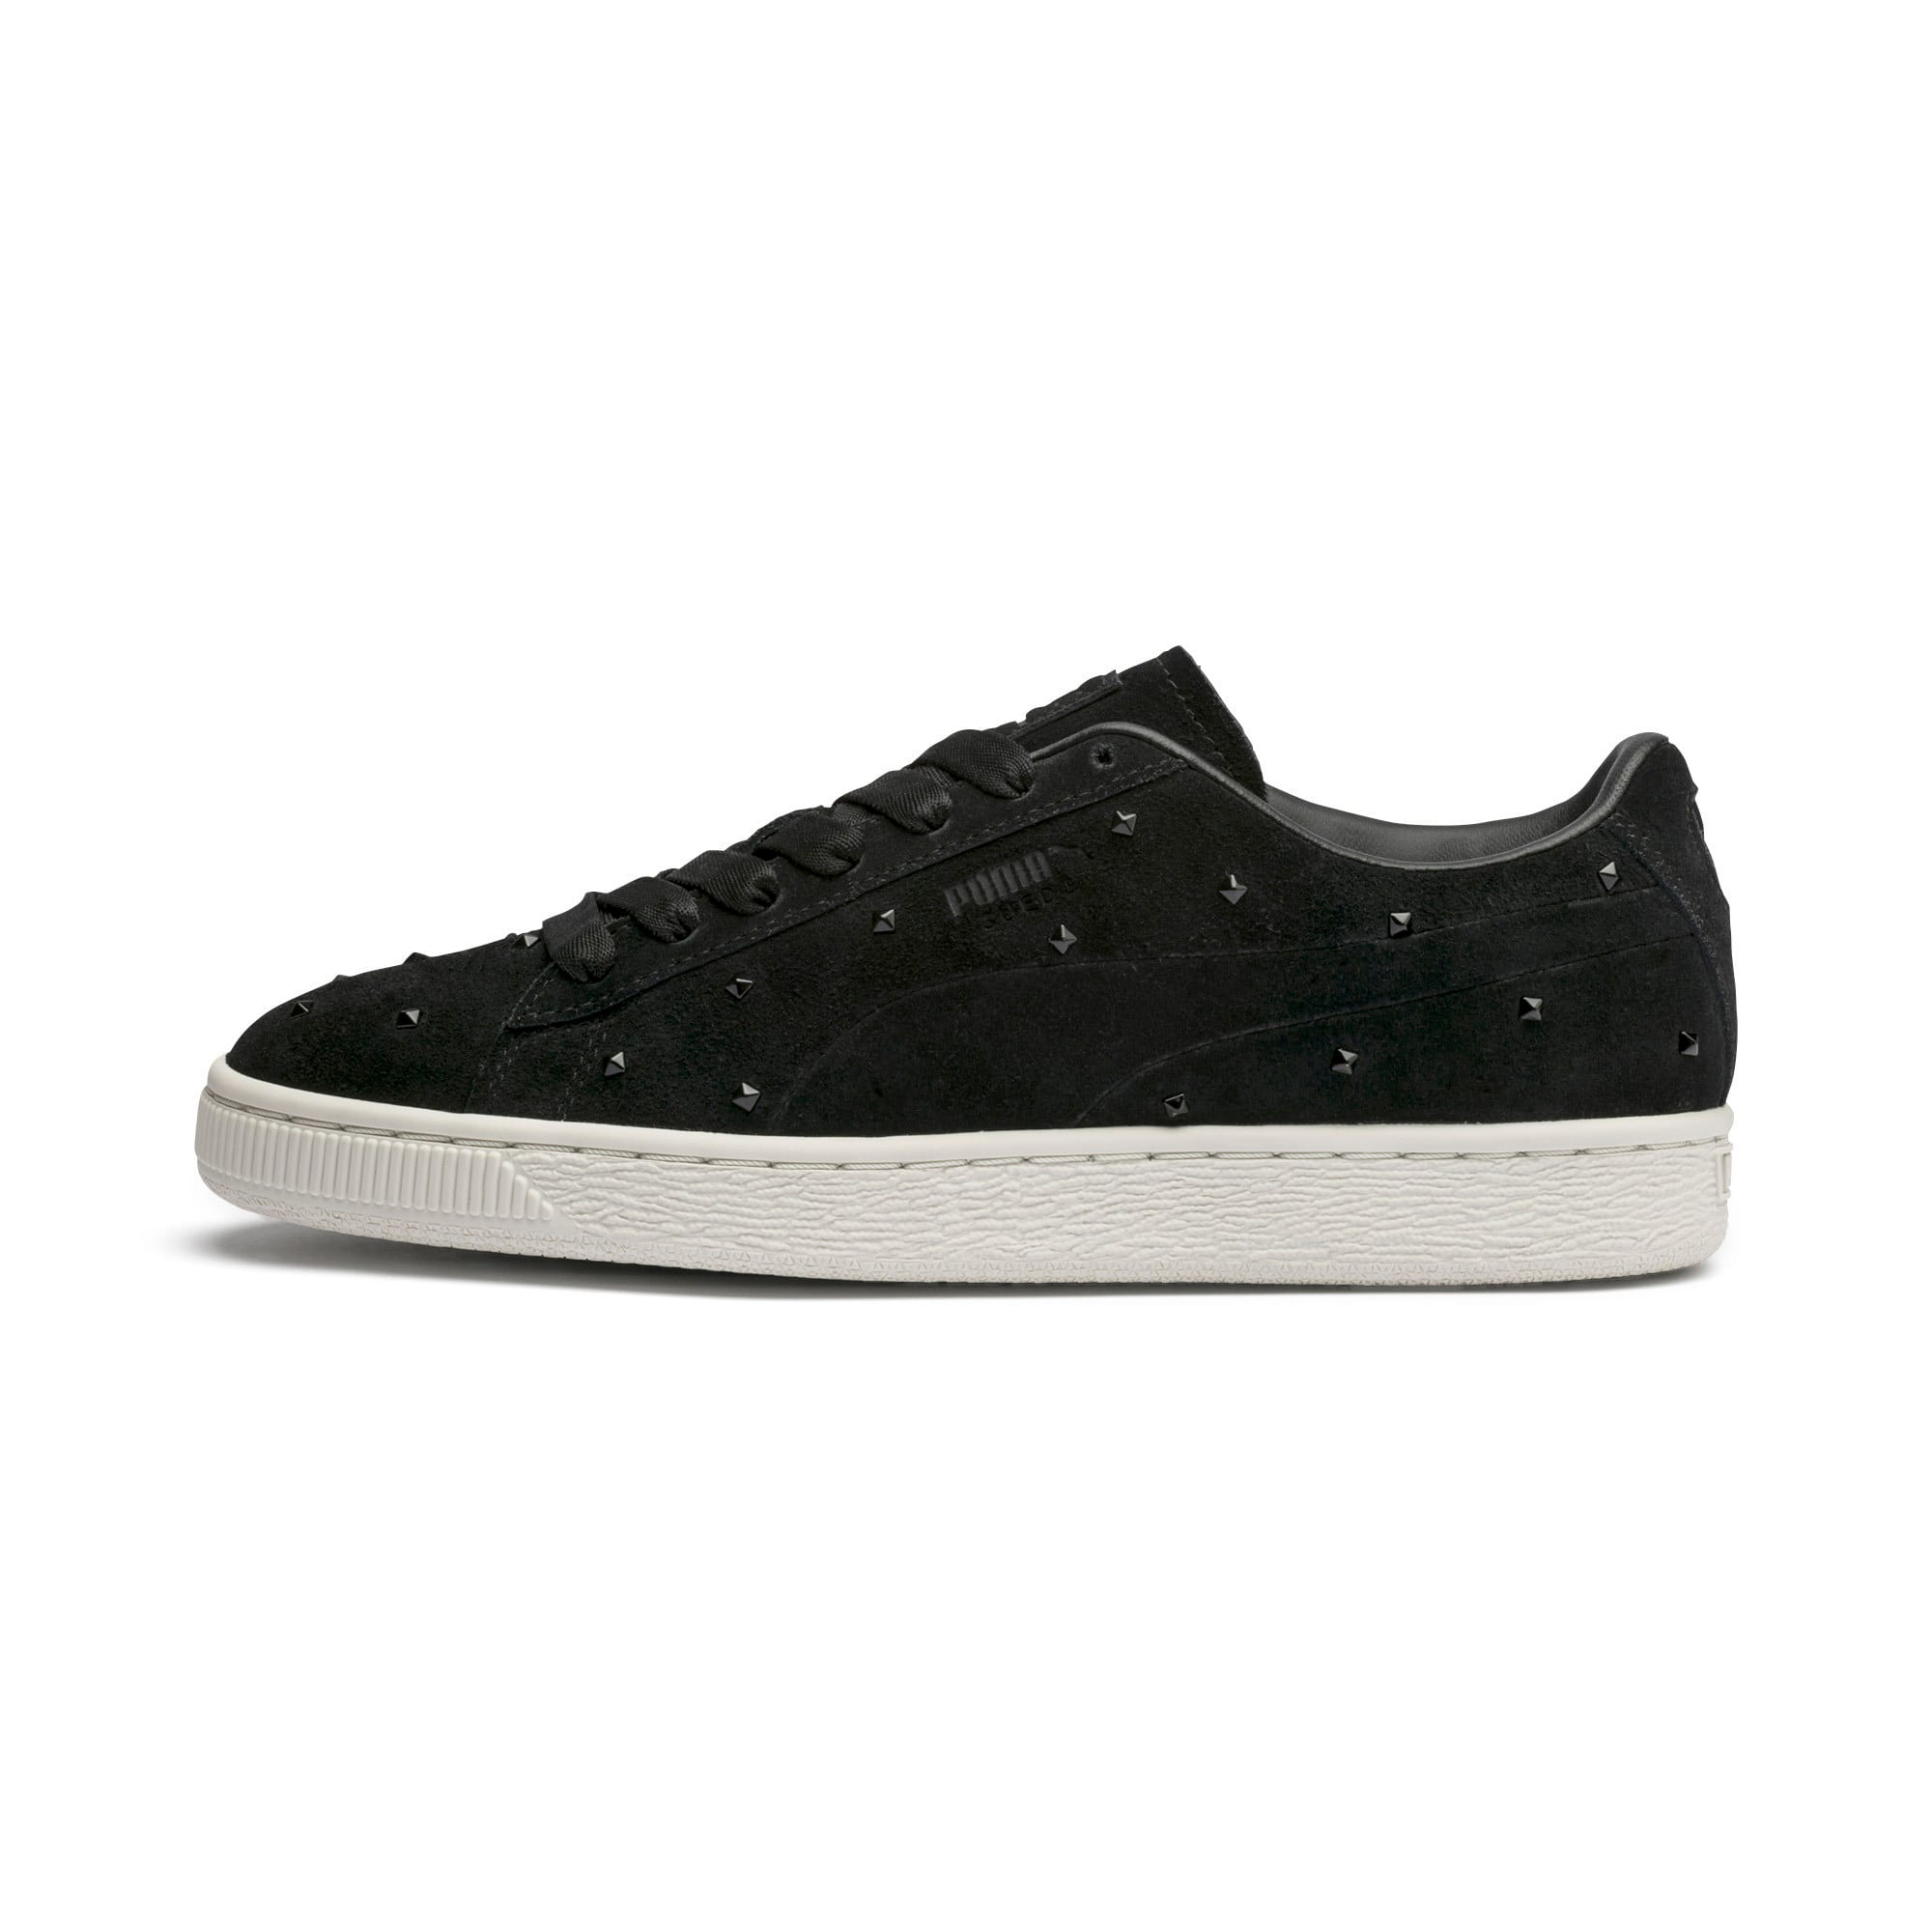 Thumbnail 1 of Suede Studs Women's Trainers, Puma Black-Marshmallow, medium